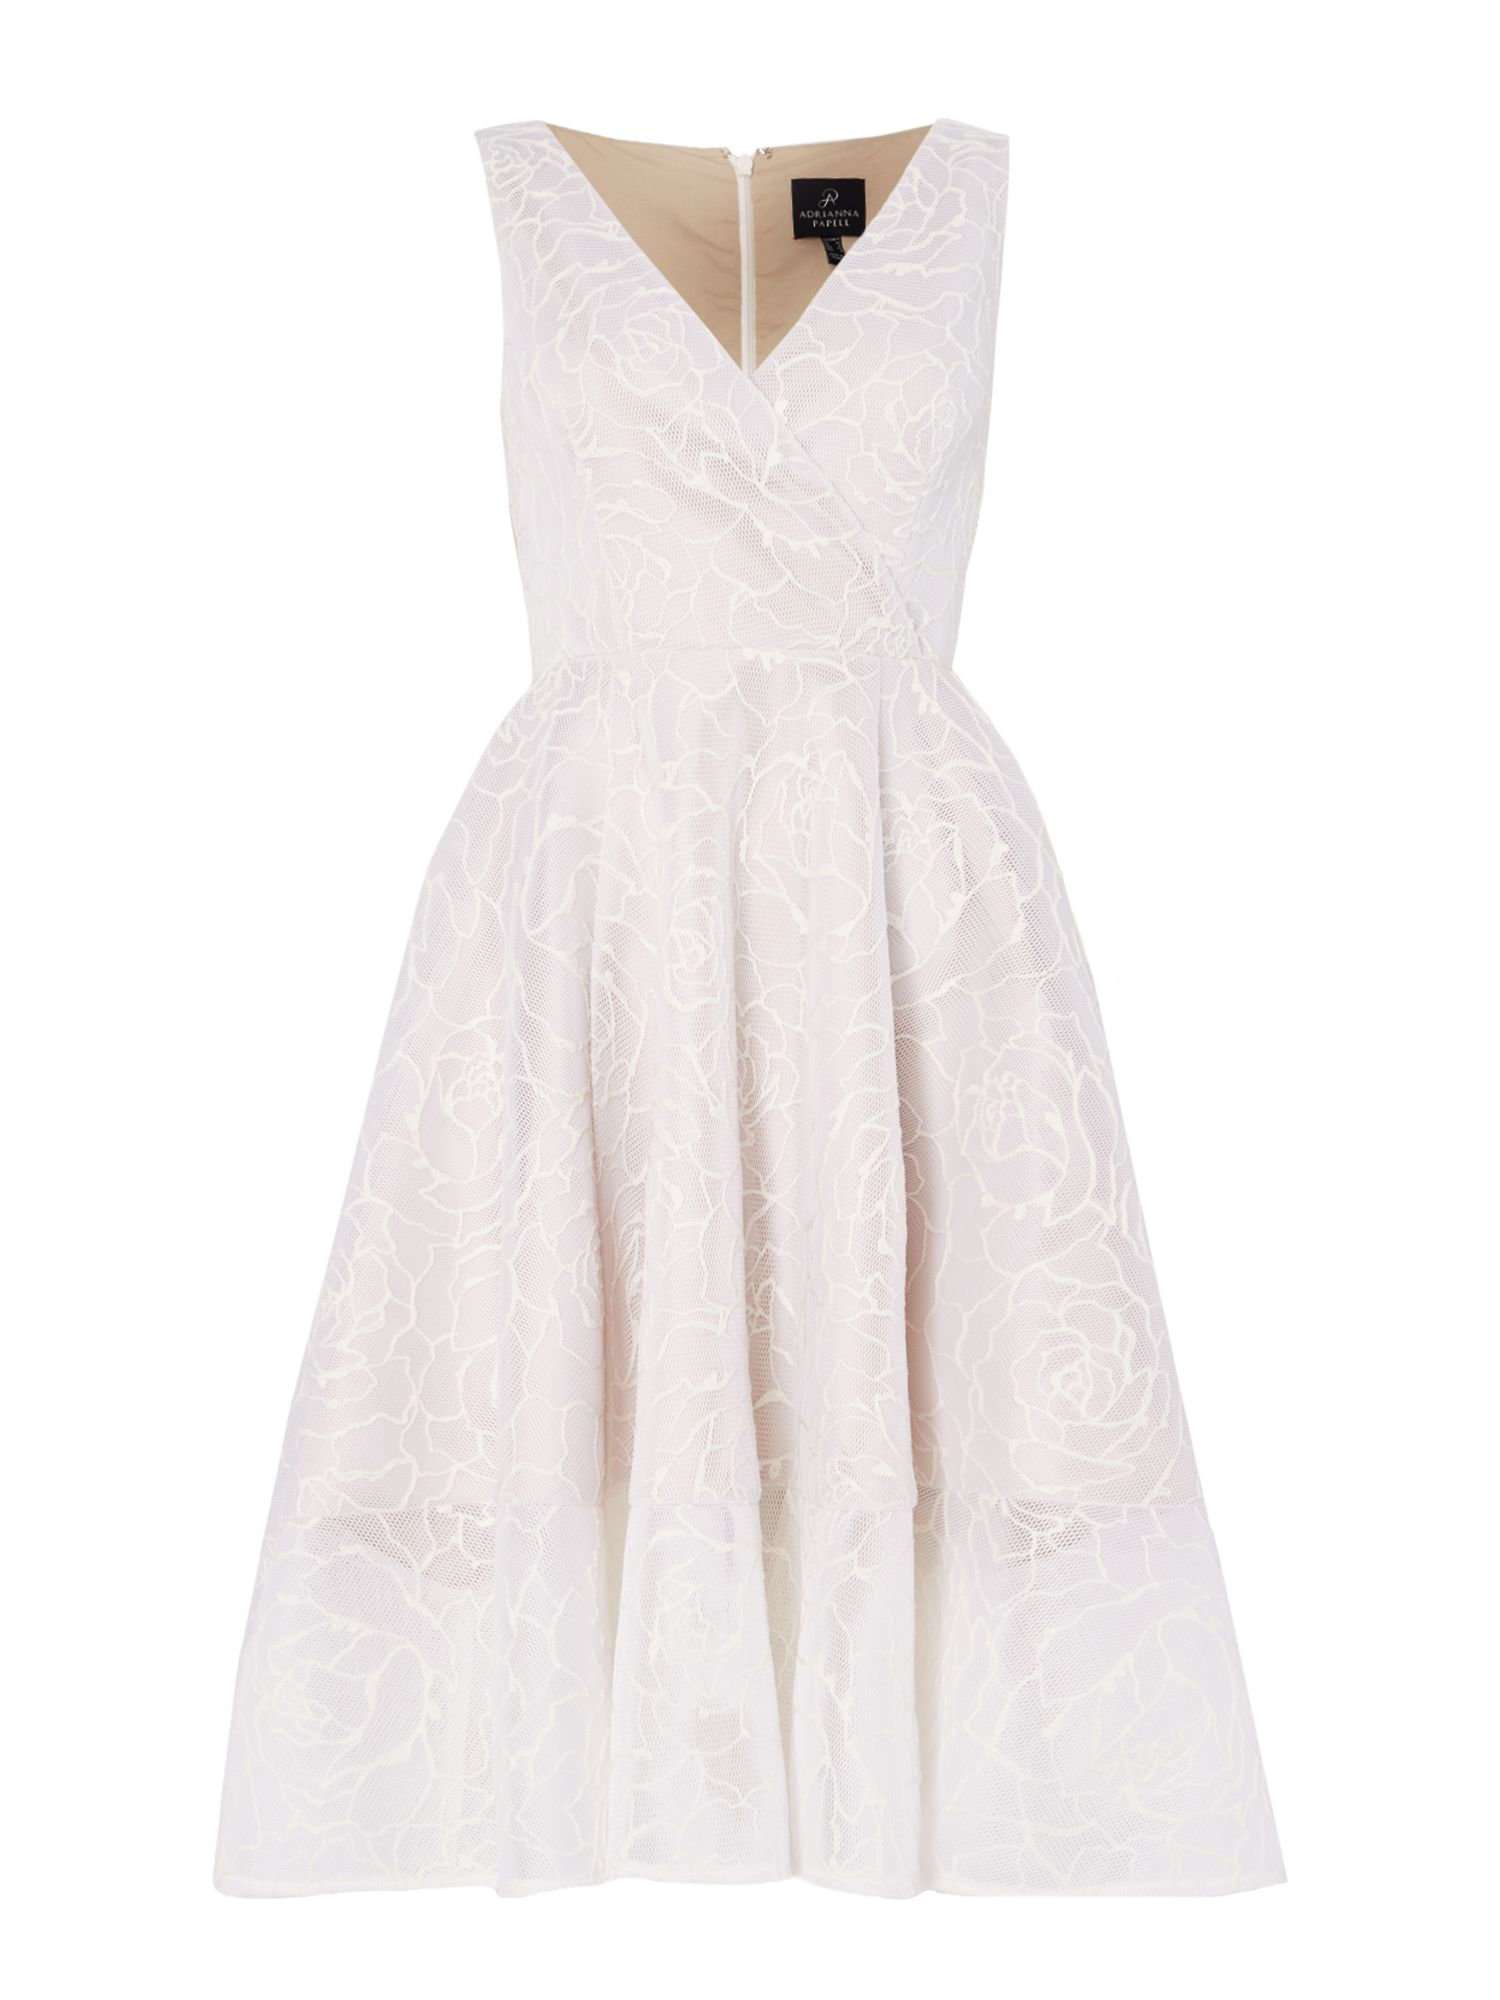 Adrianna Papell Sleevless v neck lace dress, White